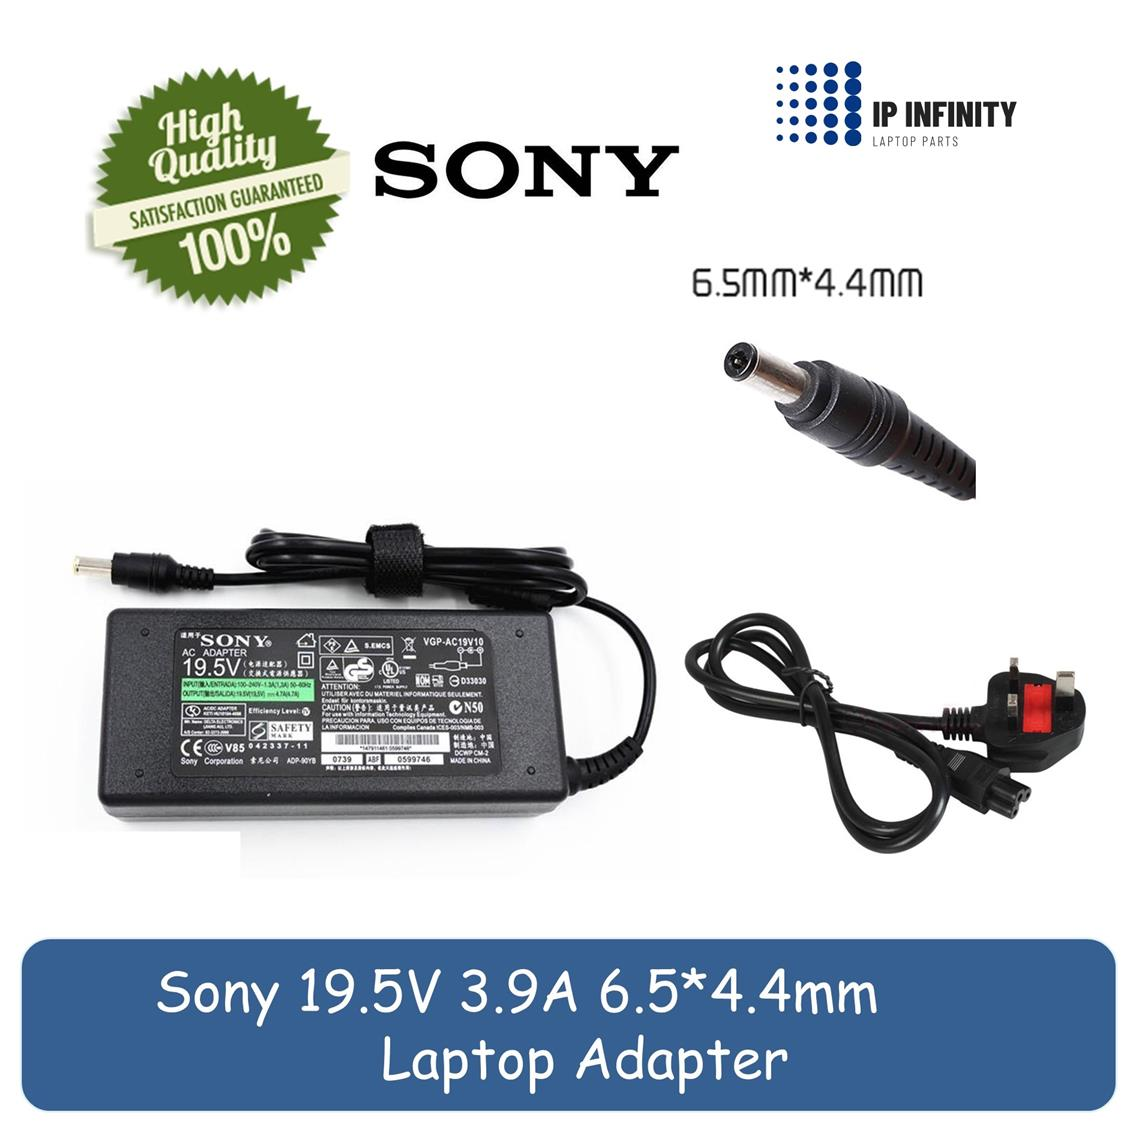 Sony Vaio PCG-3E7P 31311W 61412W 7Z1M VGN-CR23G CS36GJ Adapter Charger